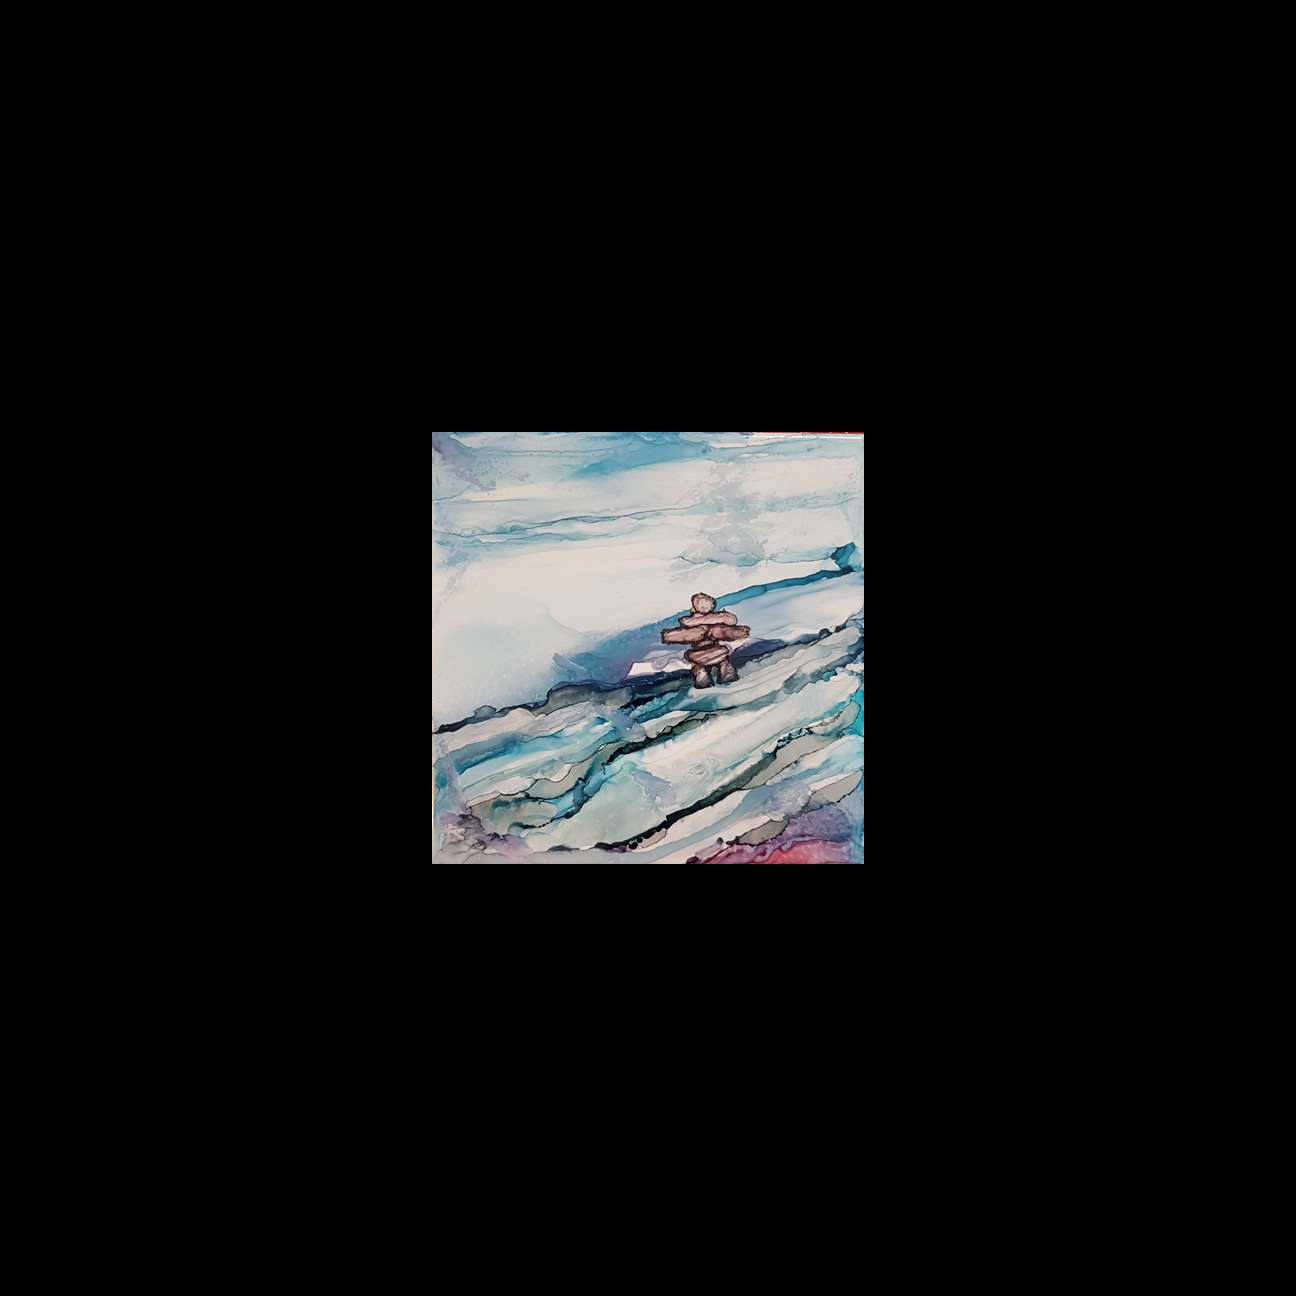 "2019-06 ""Northern Canadian Inukshuk"" Image: 6"" x 6"" Framed: 7.75"" x 7.75"" Alcohol Ink on Ceramic Tile $100.00"